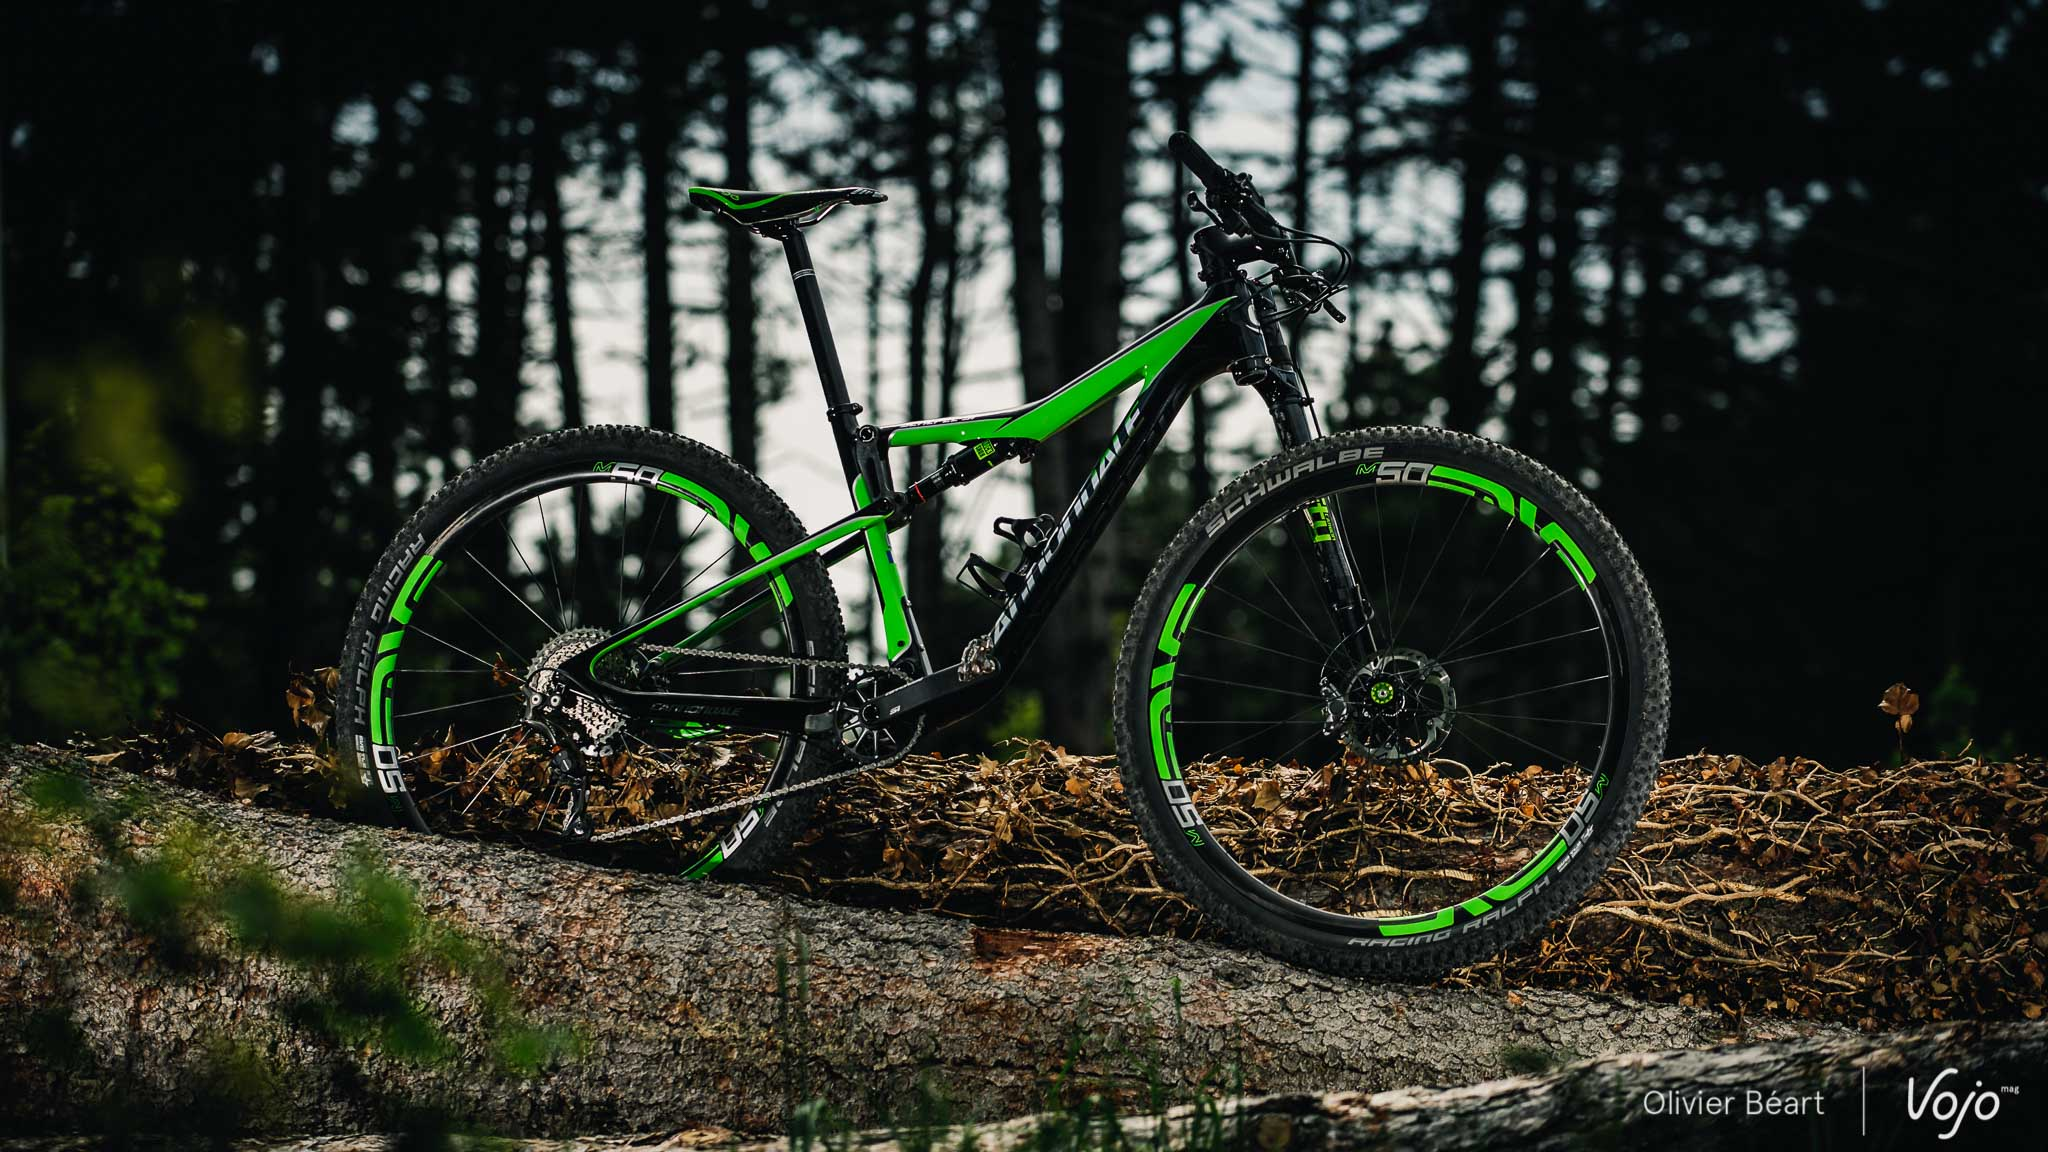 Cannondale_Scalpel_2017_Copyright_OBeart_VojoMag-4